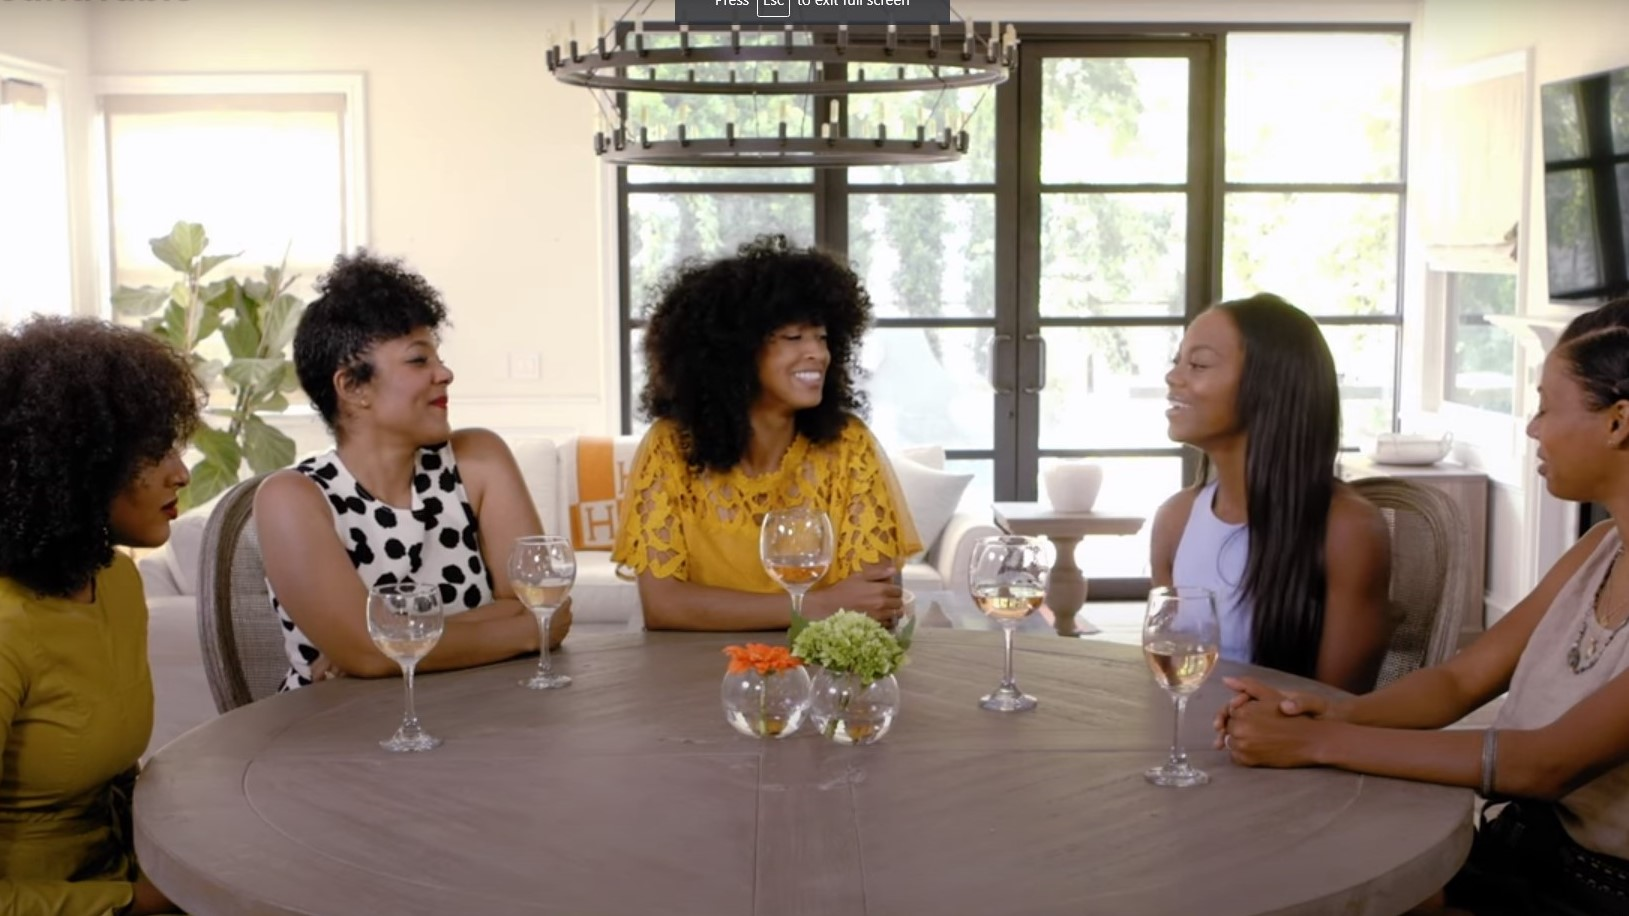 Ladies' Round Table: What's Your Type?